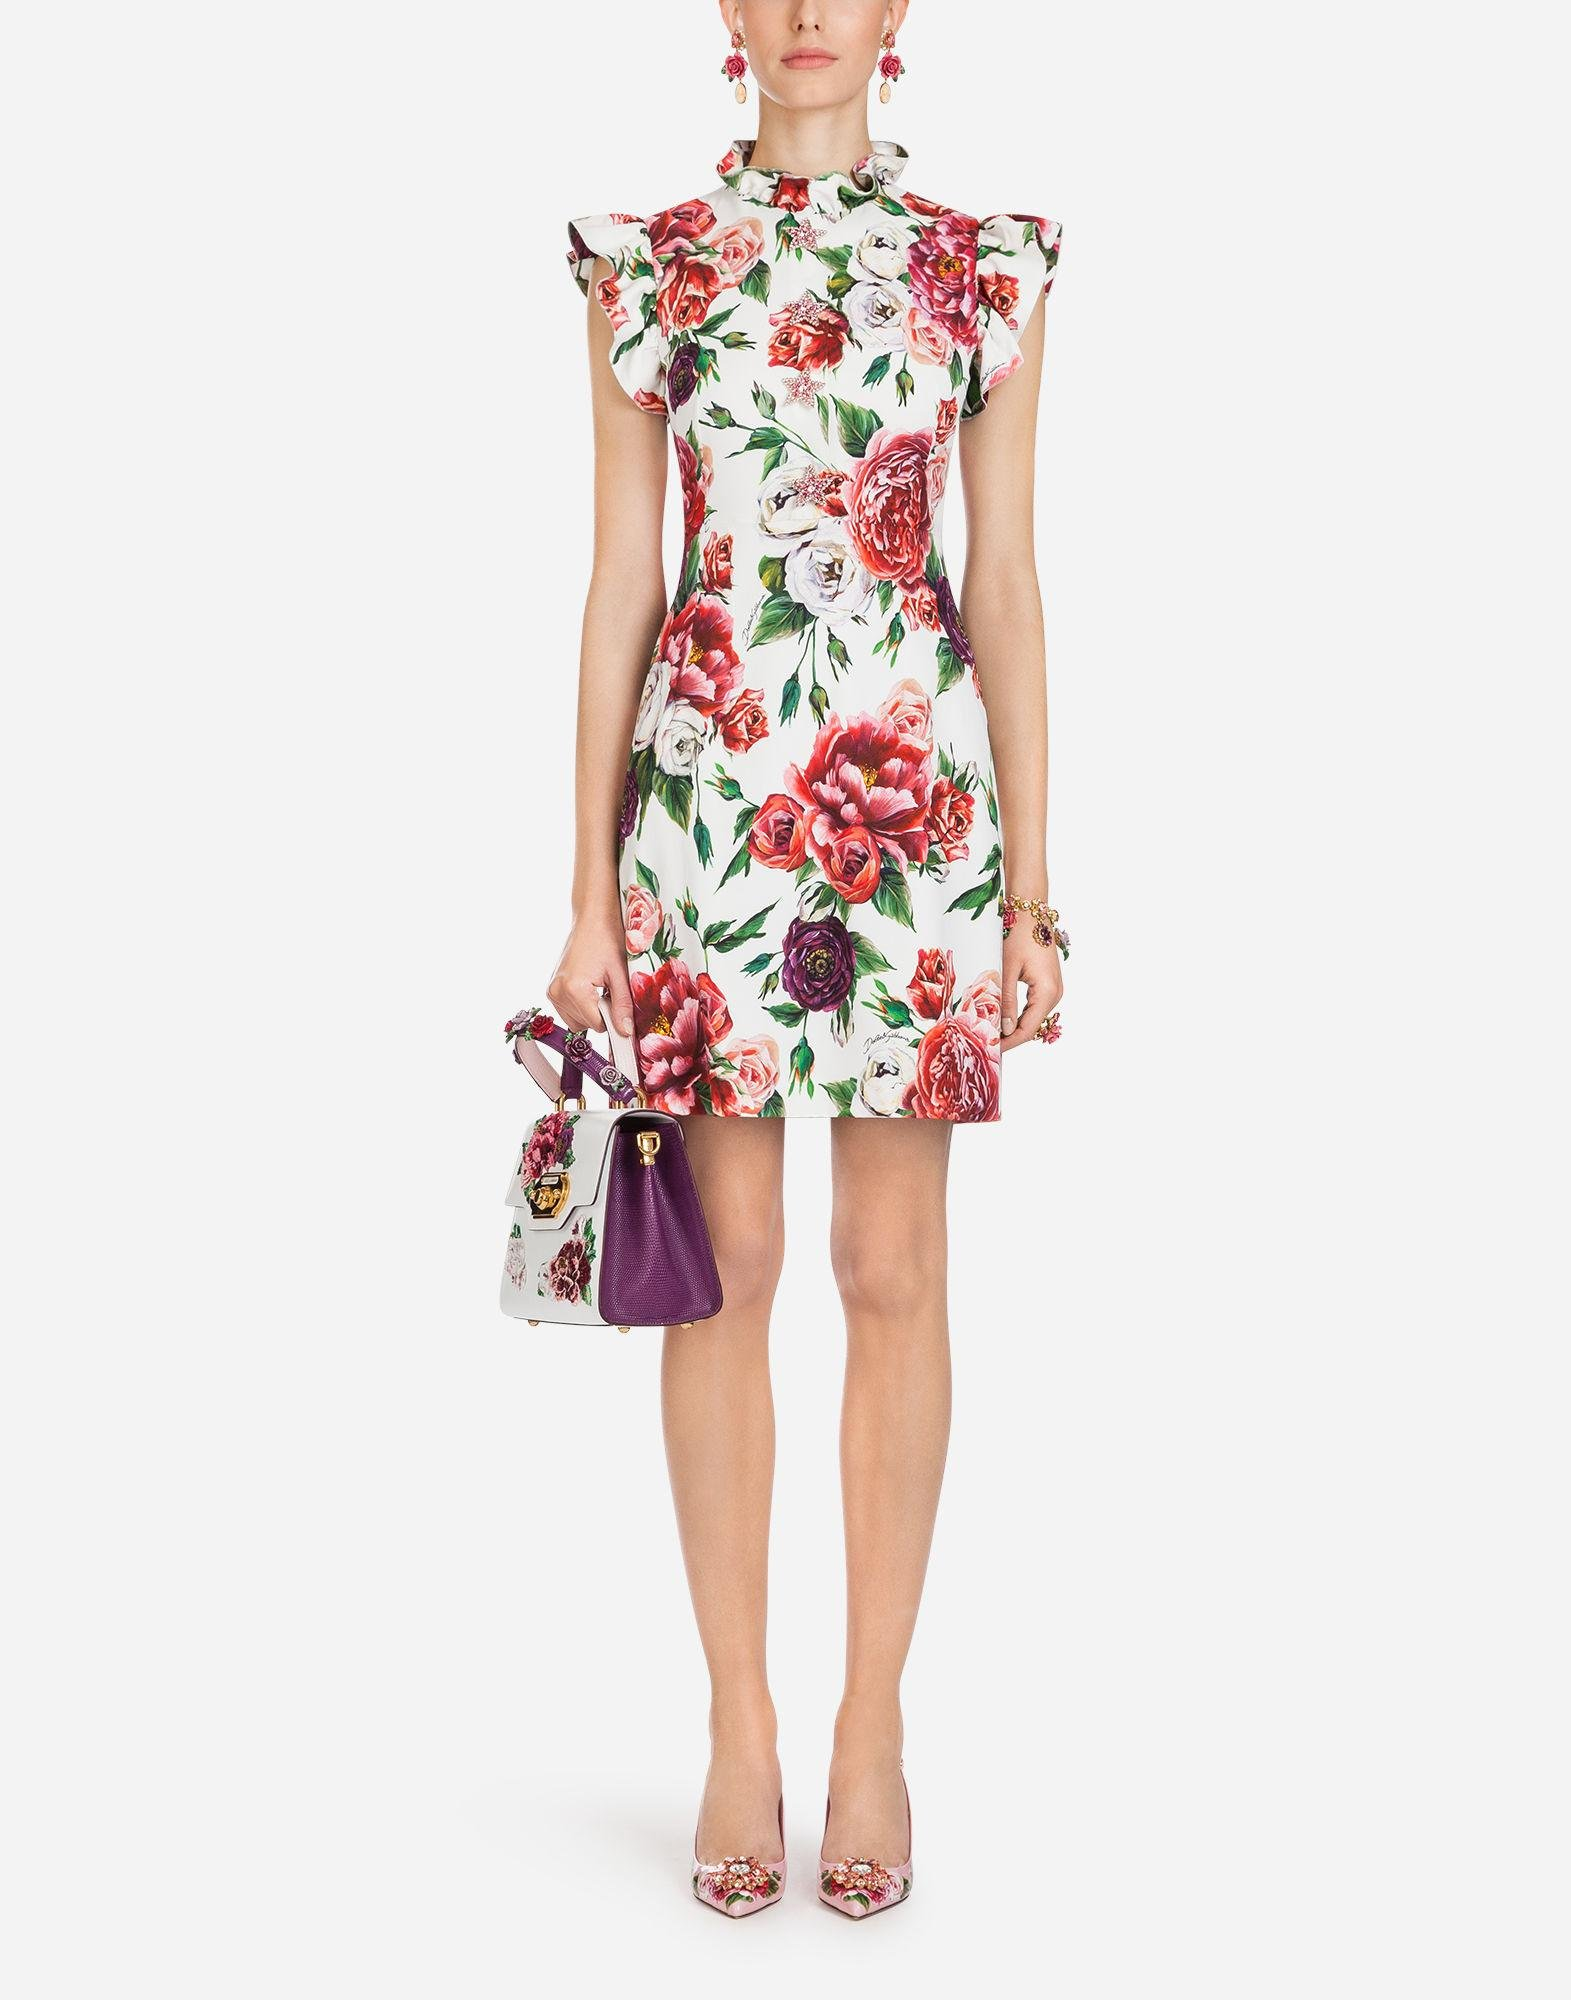 High Quality For Sale Outlet Original Peony Print Cady dress - Multicolour Dolce & Gabbana Cheap Latest Collections Clearance Online Ebay XsrWibvpw